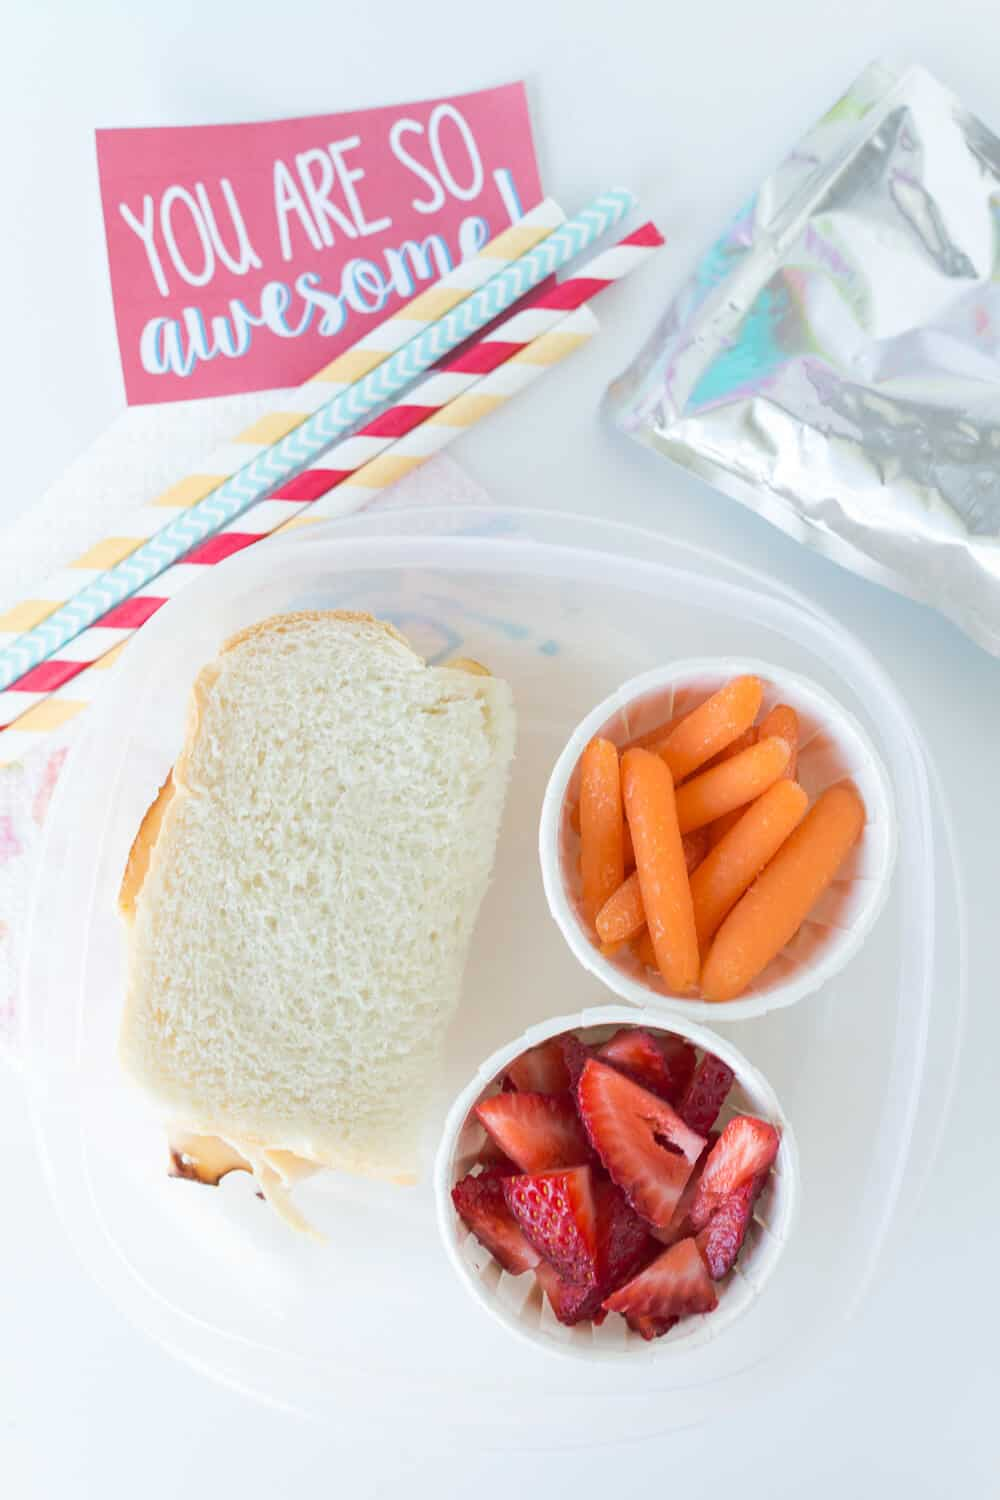 Five Lunchbox Packing Tips... packing sides in cupcake lines